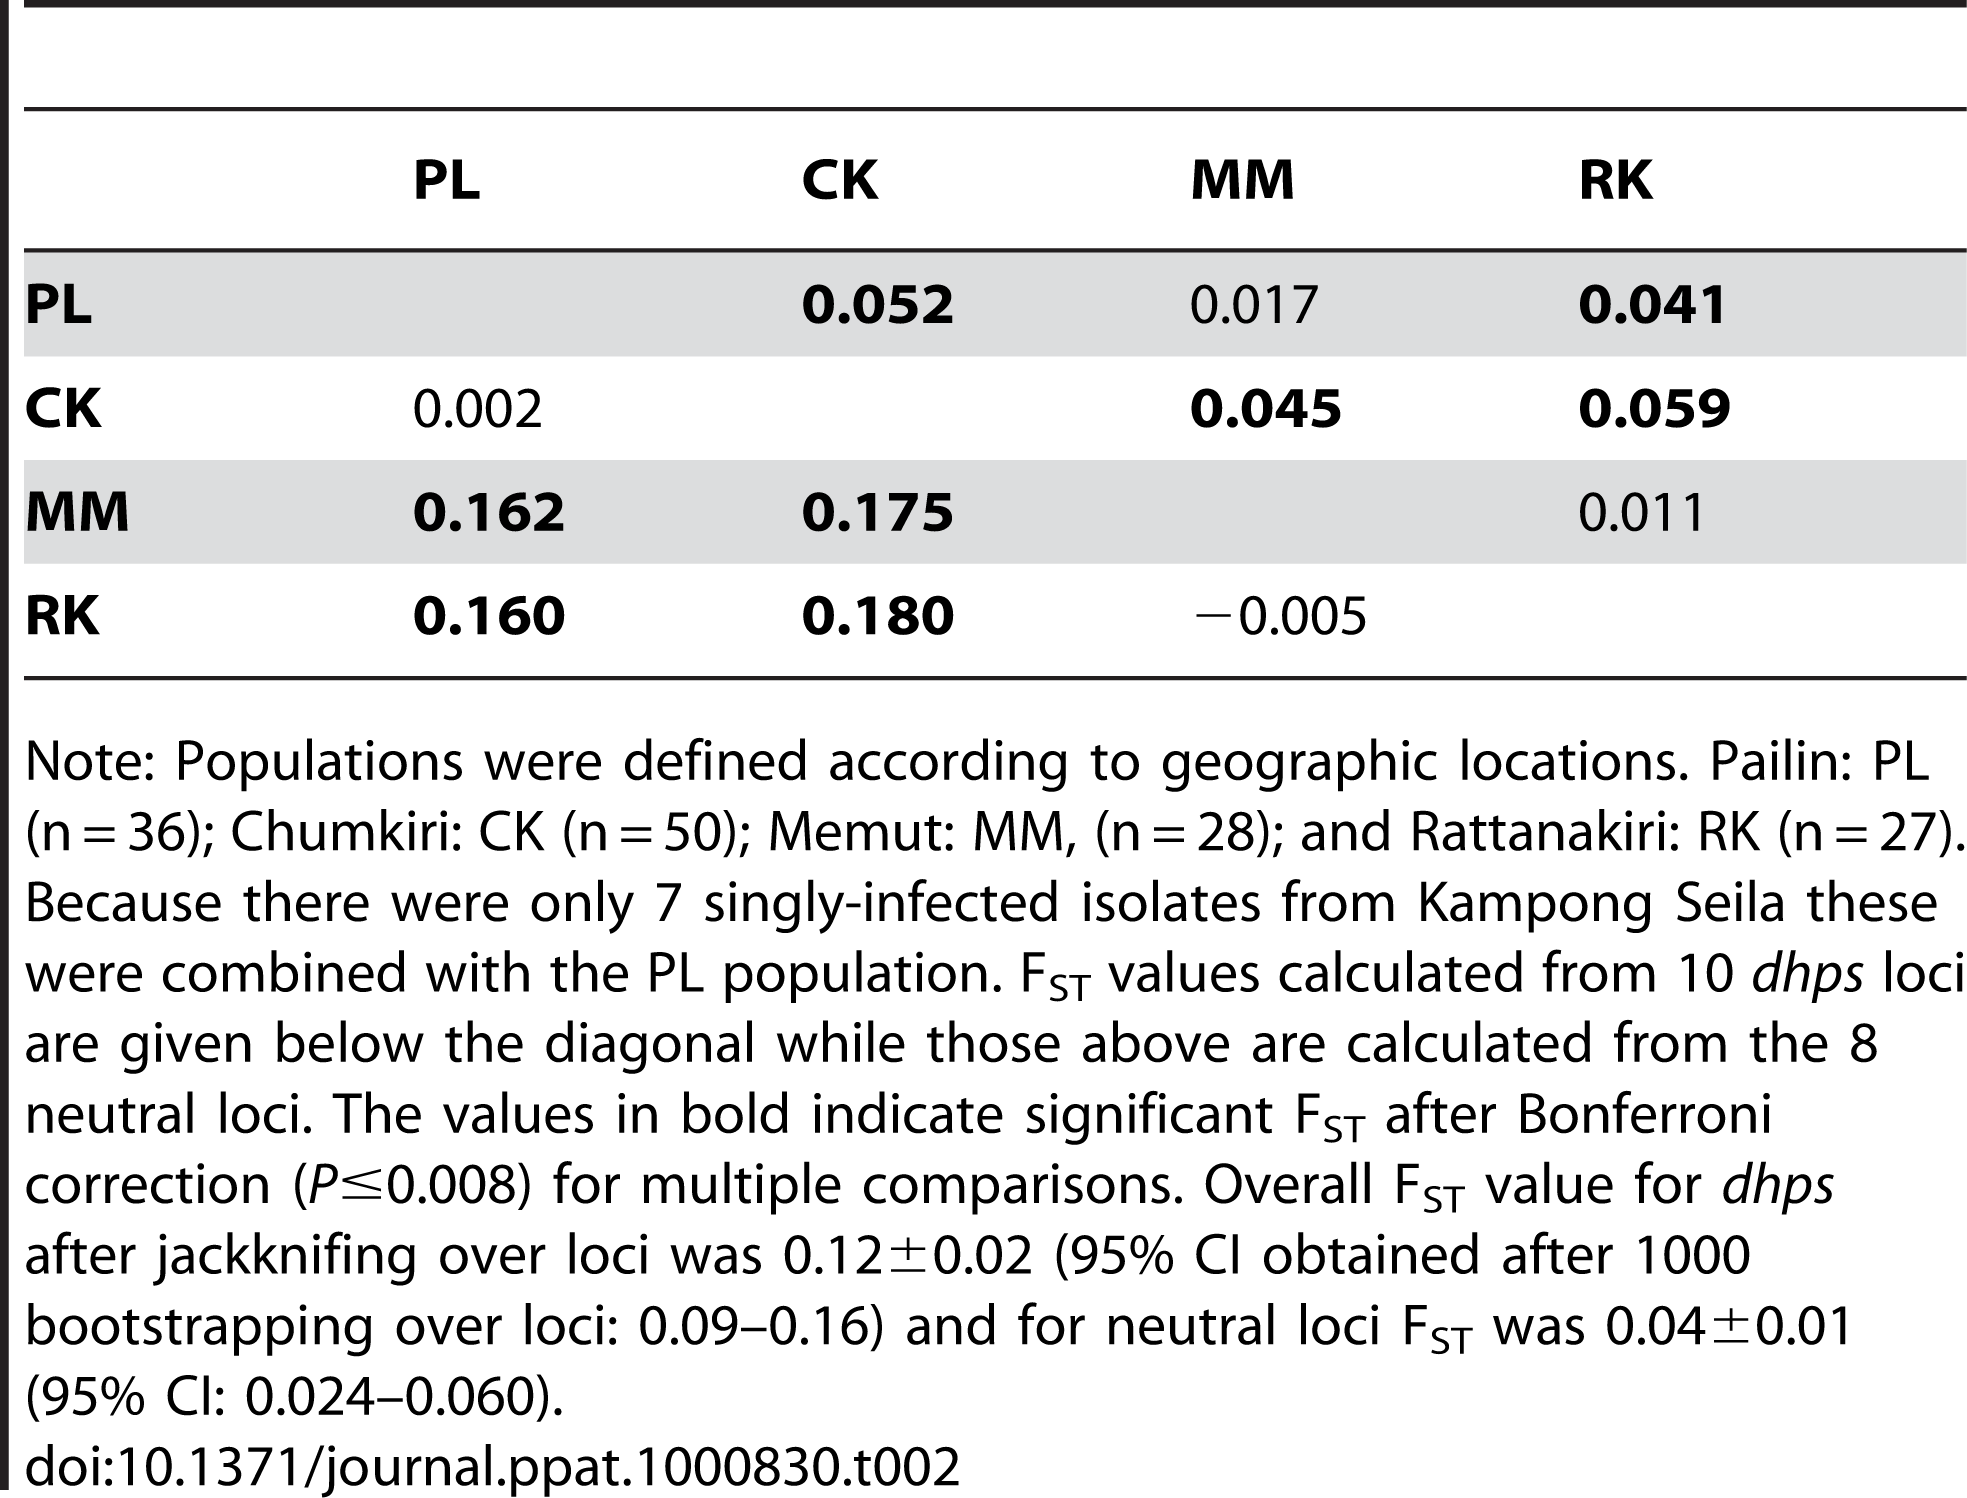 Pairwise F<sub>ST</sub> comparisons between four populations in Cambodia.